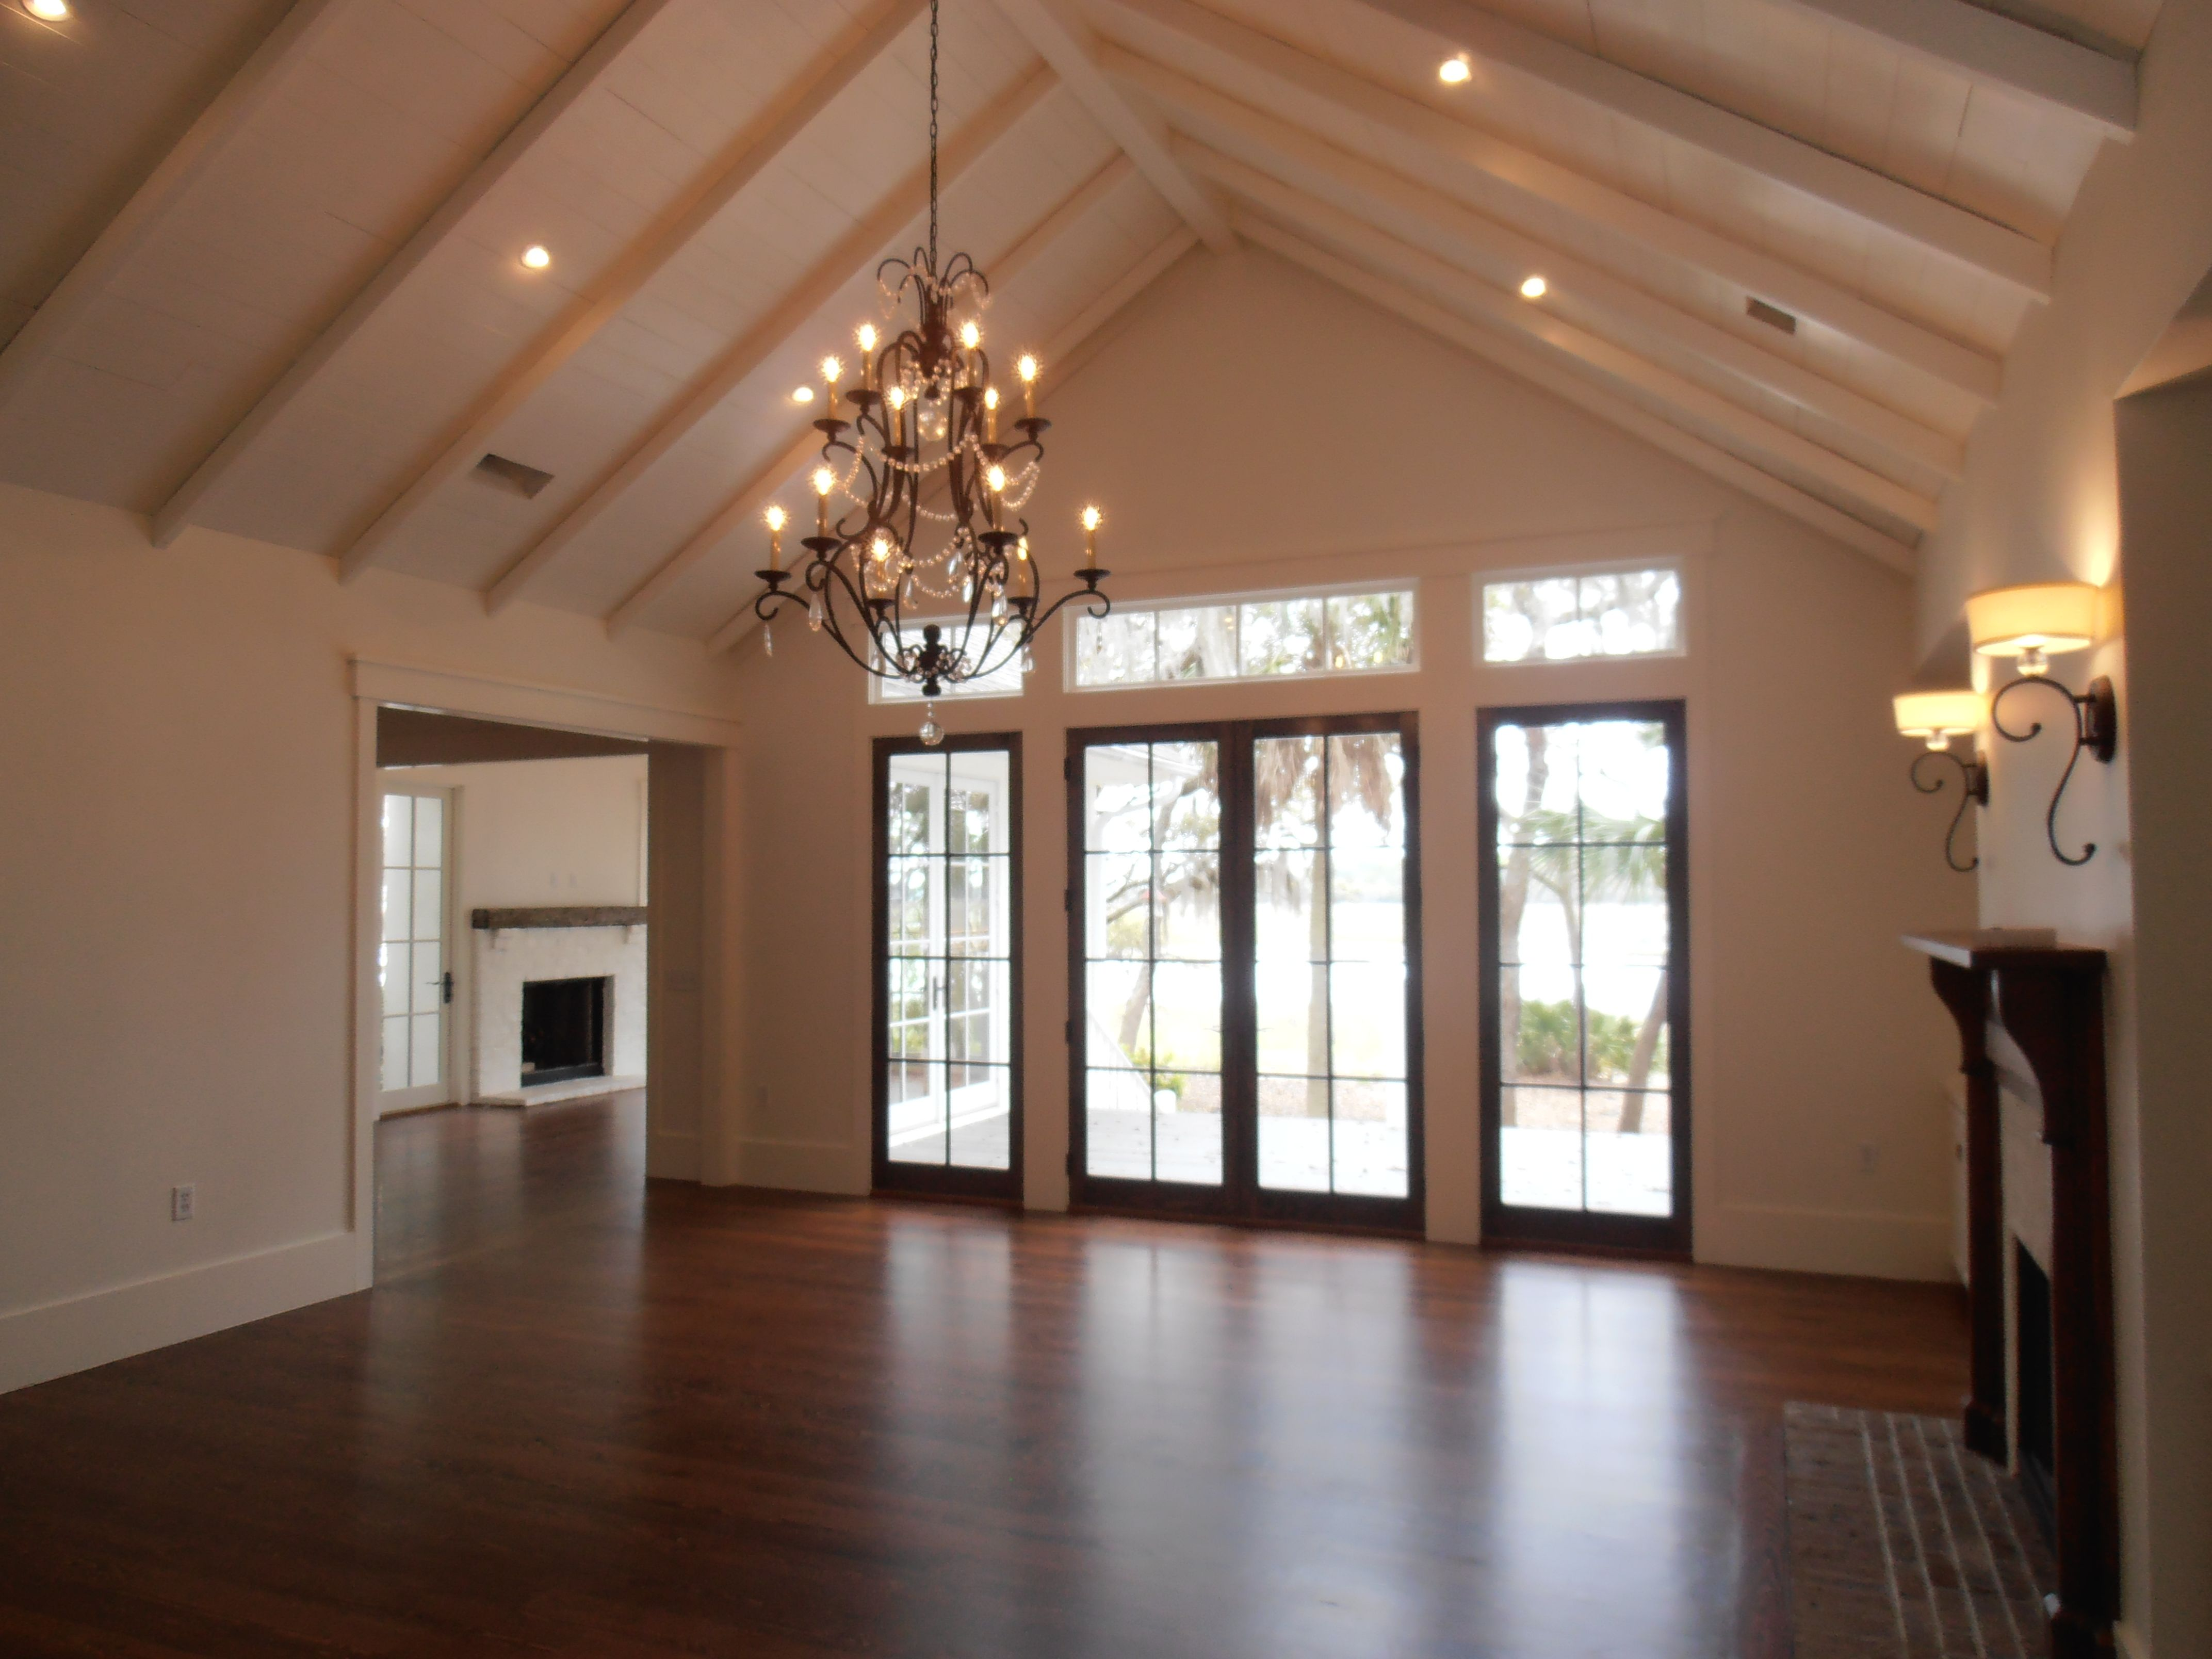 Board Ceiling Treatment With Beams Cathedral Recessed Lighting Chandelier Cherokee Brick Hearth Flush Stationary Door Panels